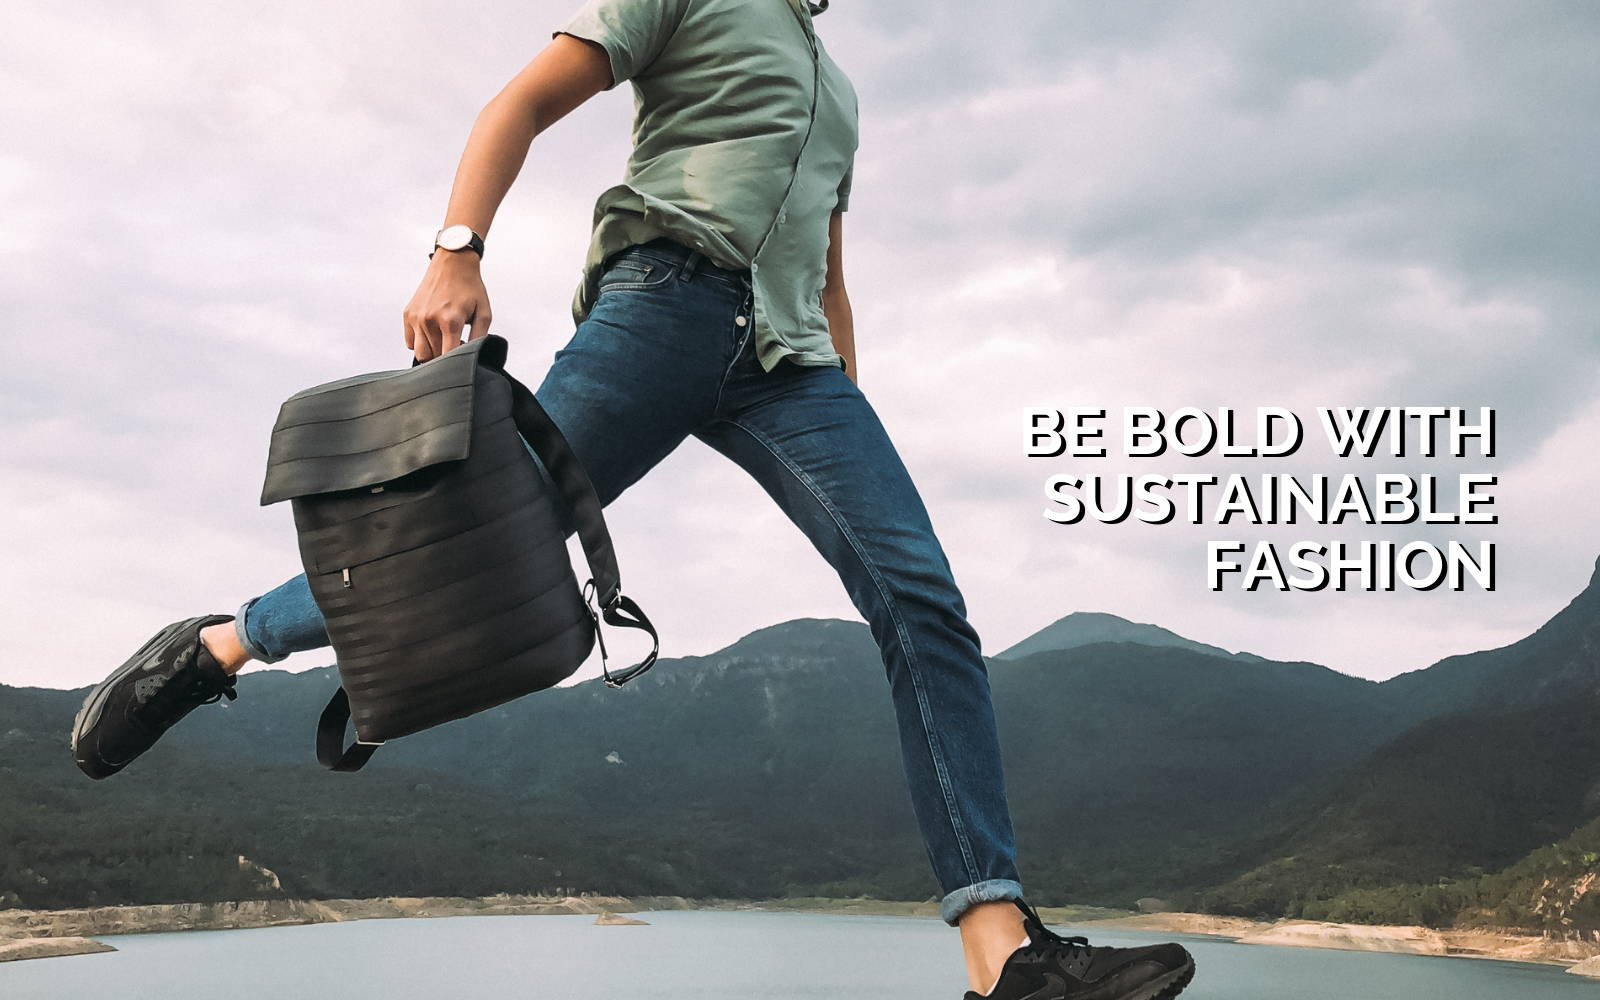 Be bold with sustainable fashion